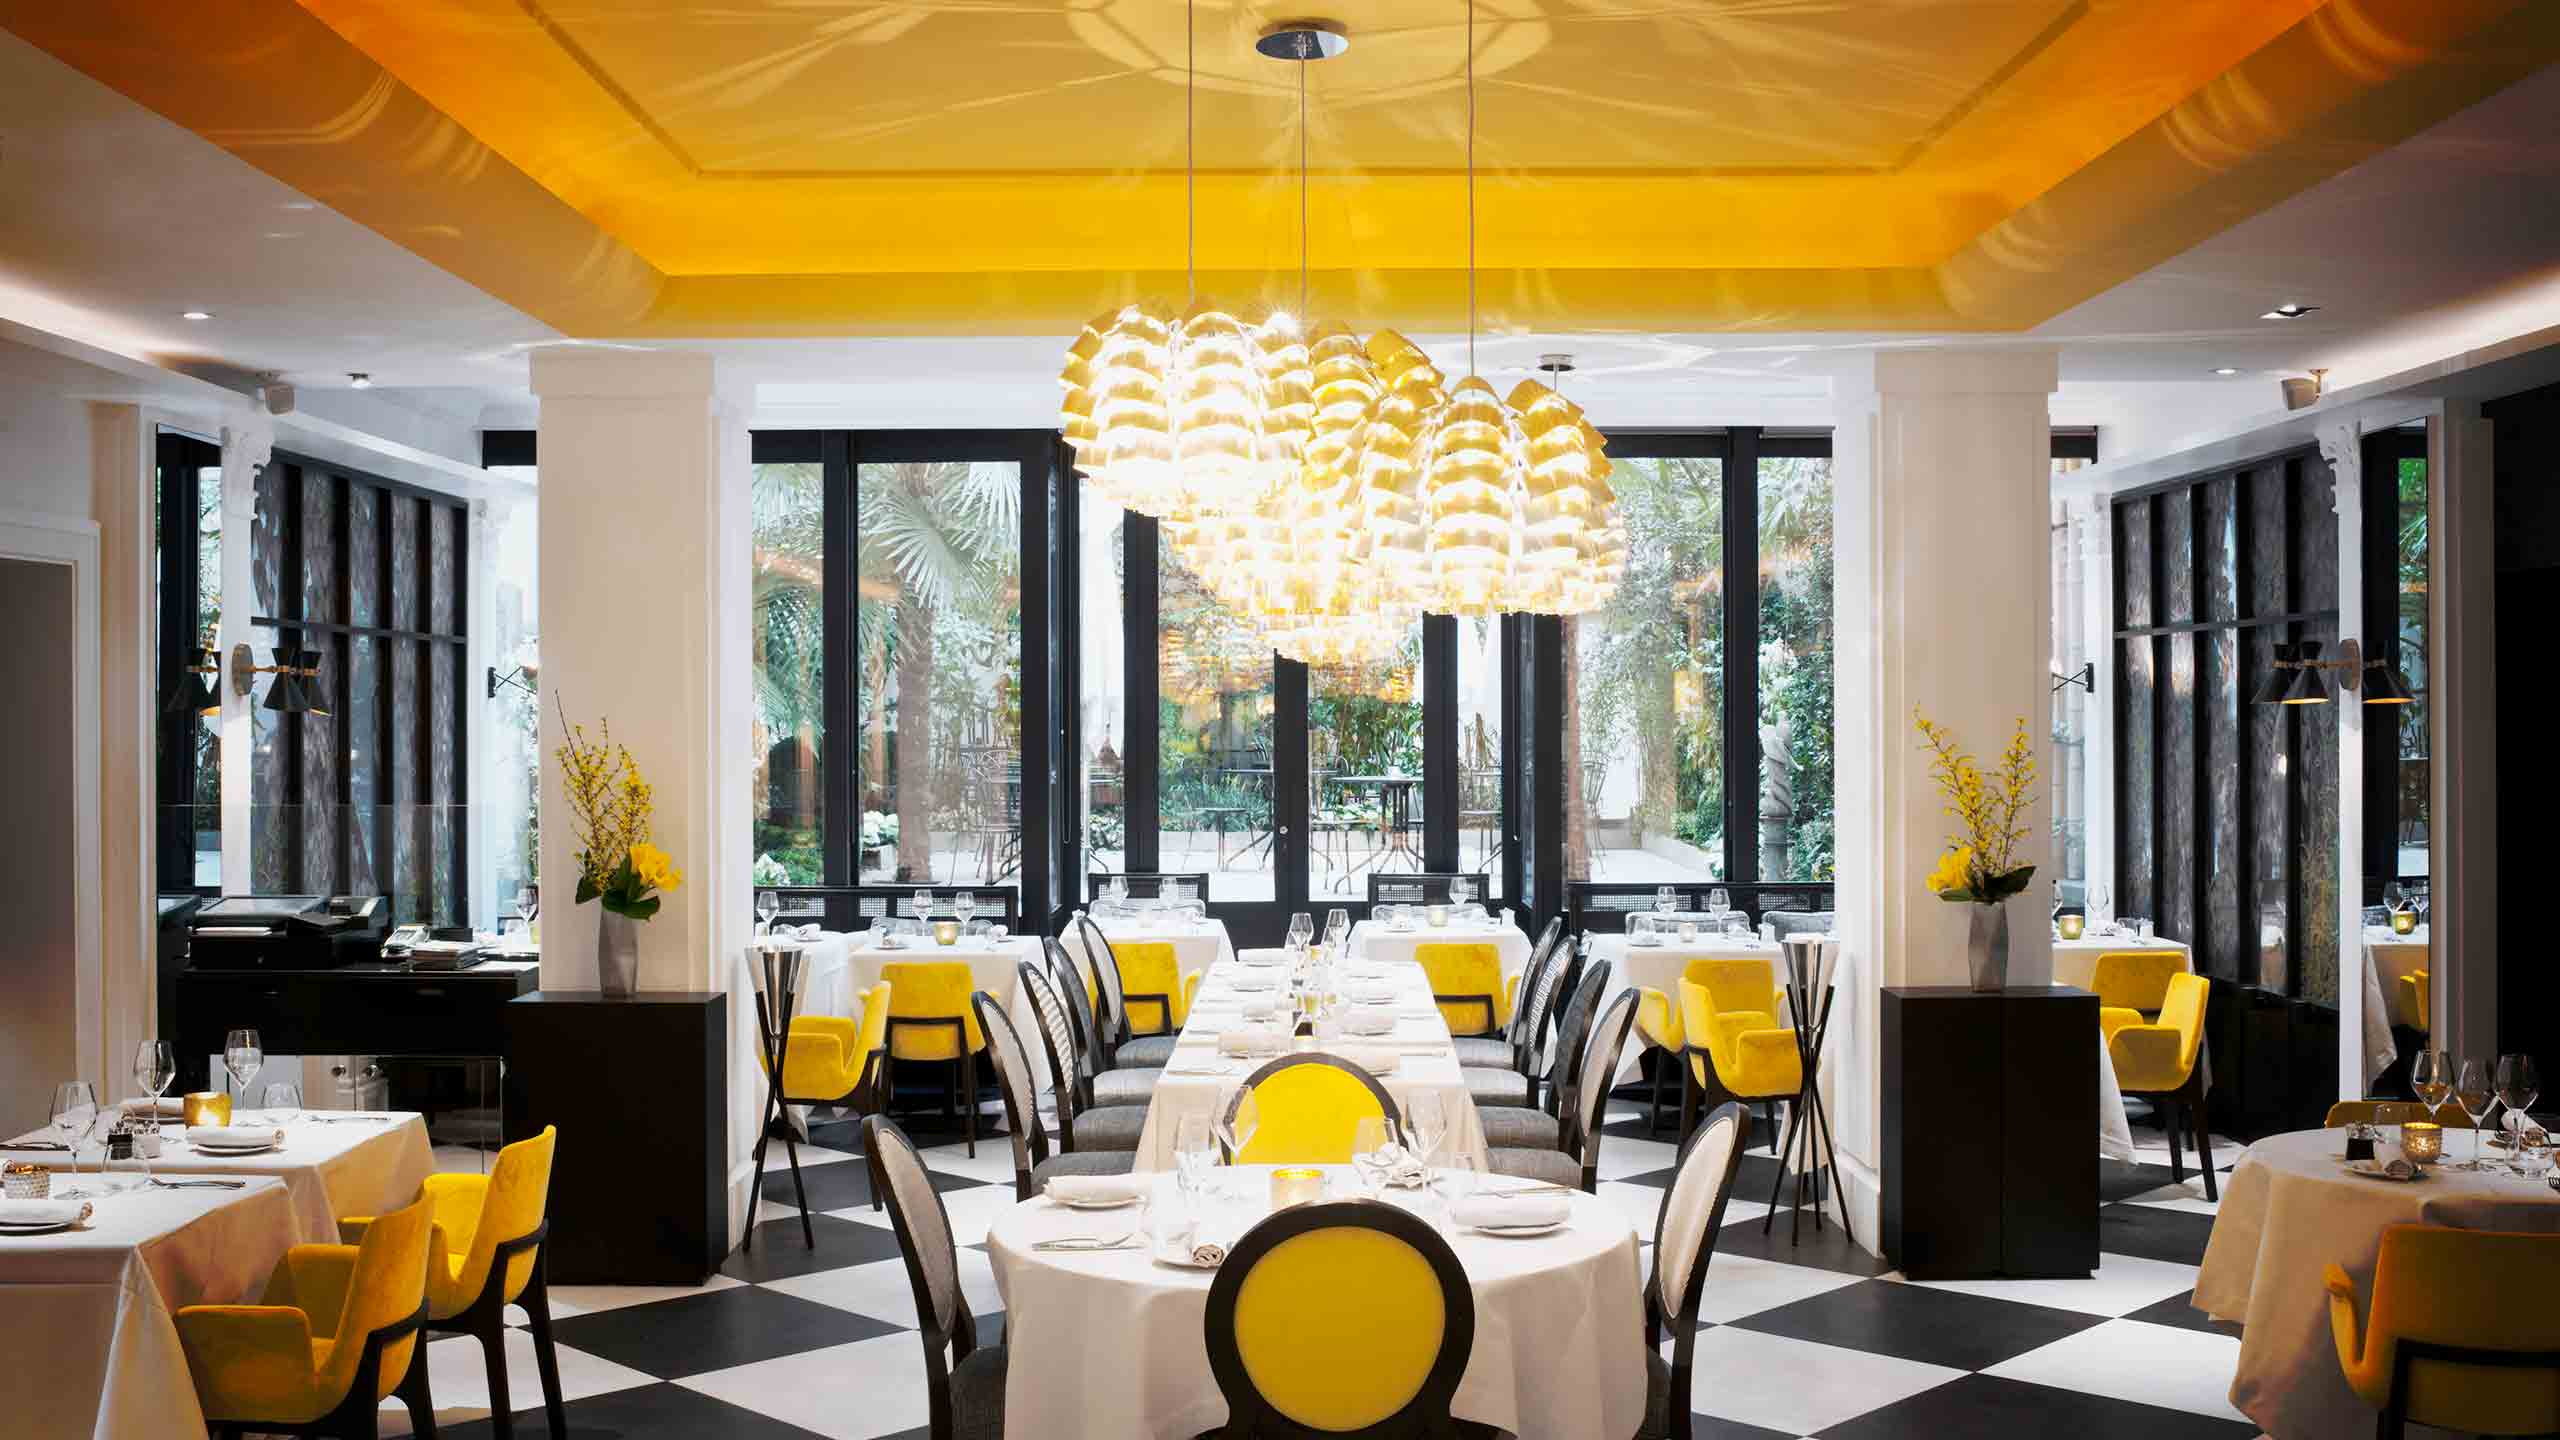 Paris Redox Dinner will be organized on June 25 at the Sofitel Paris Le Faubourg